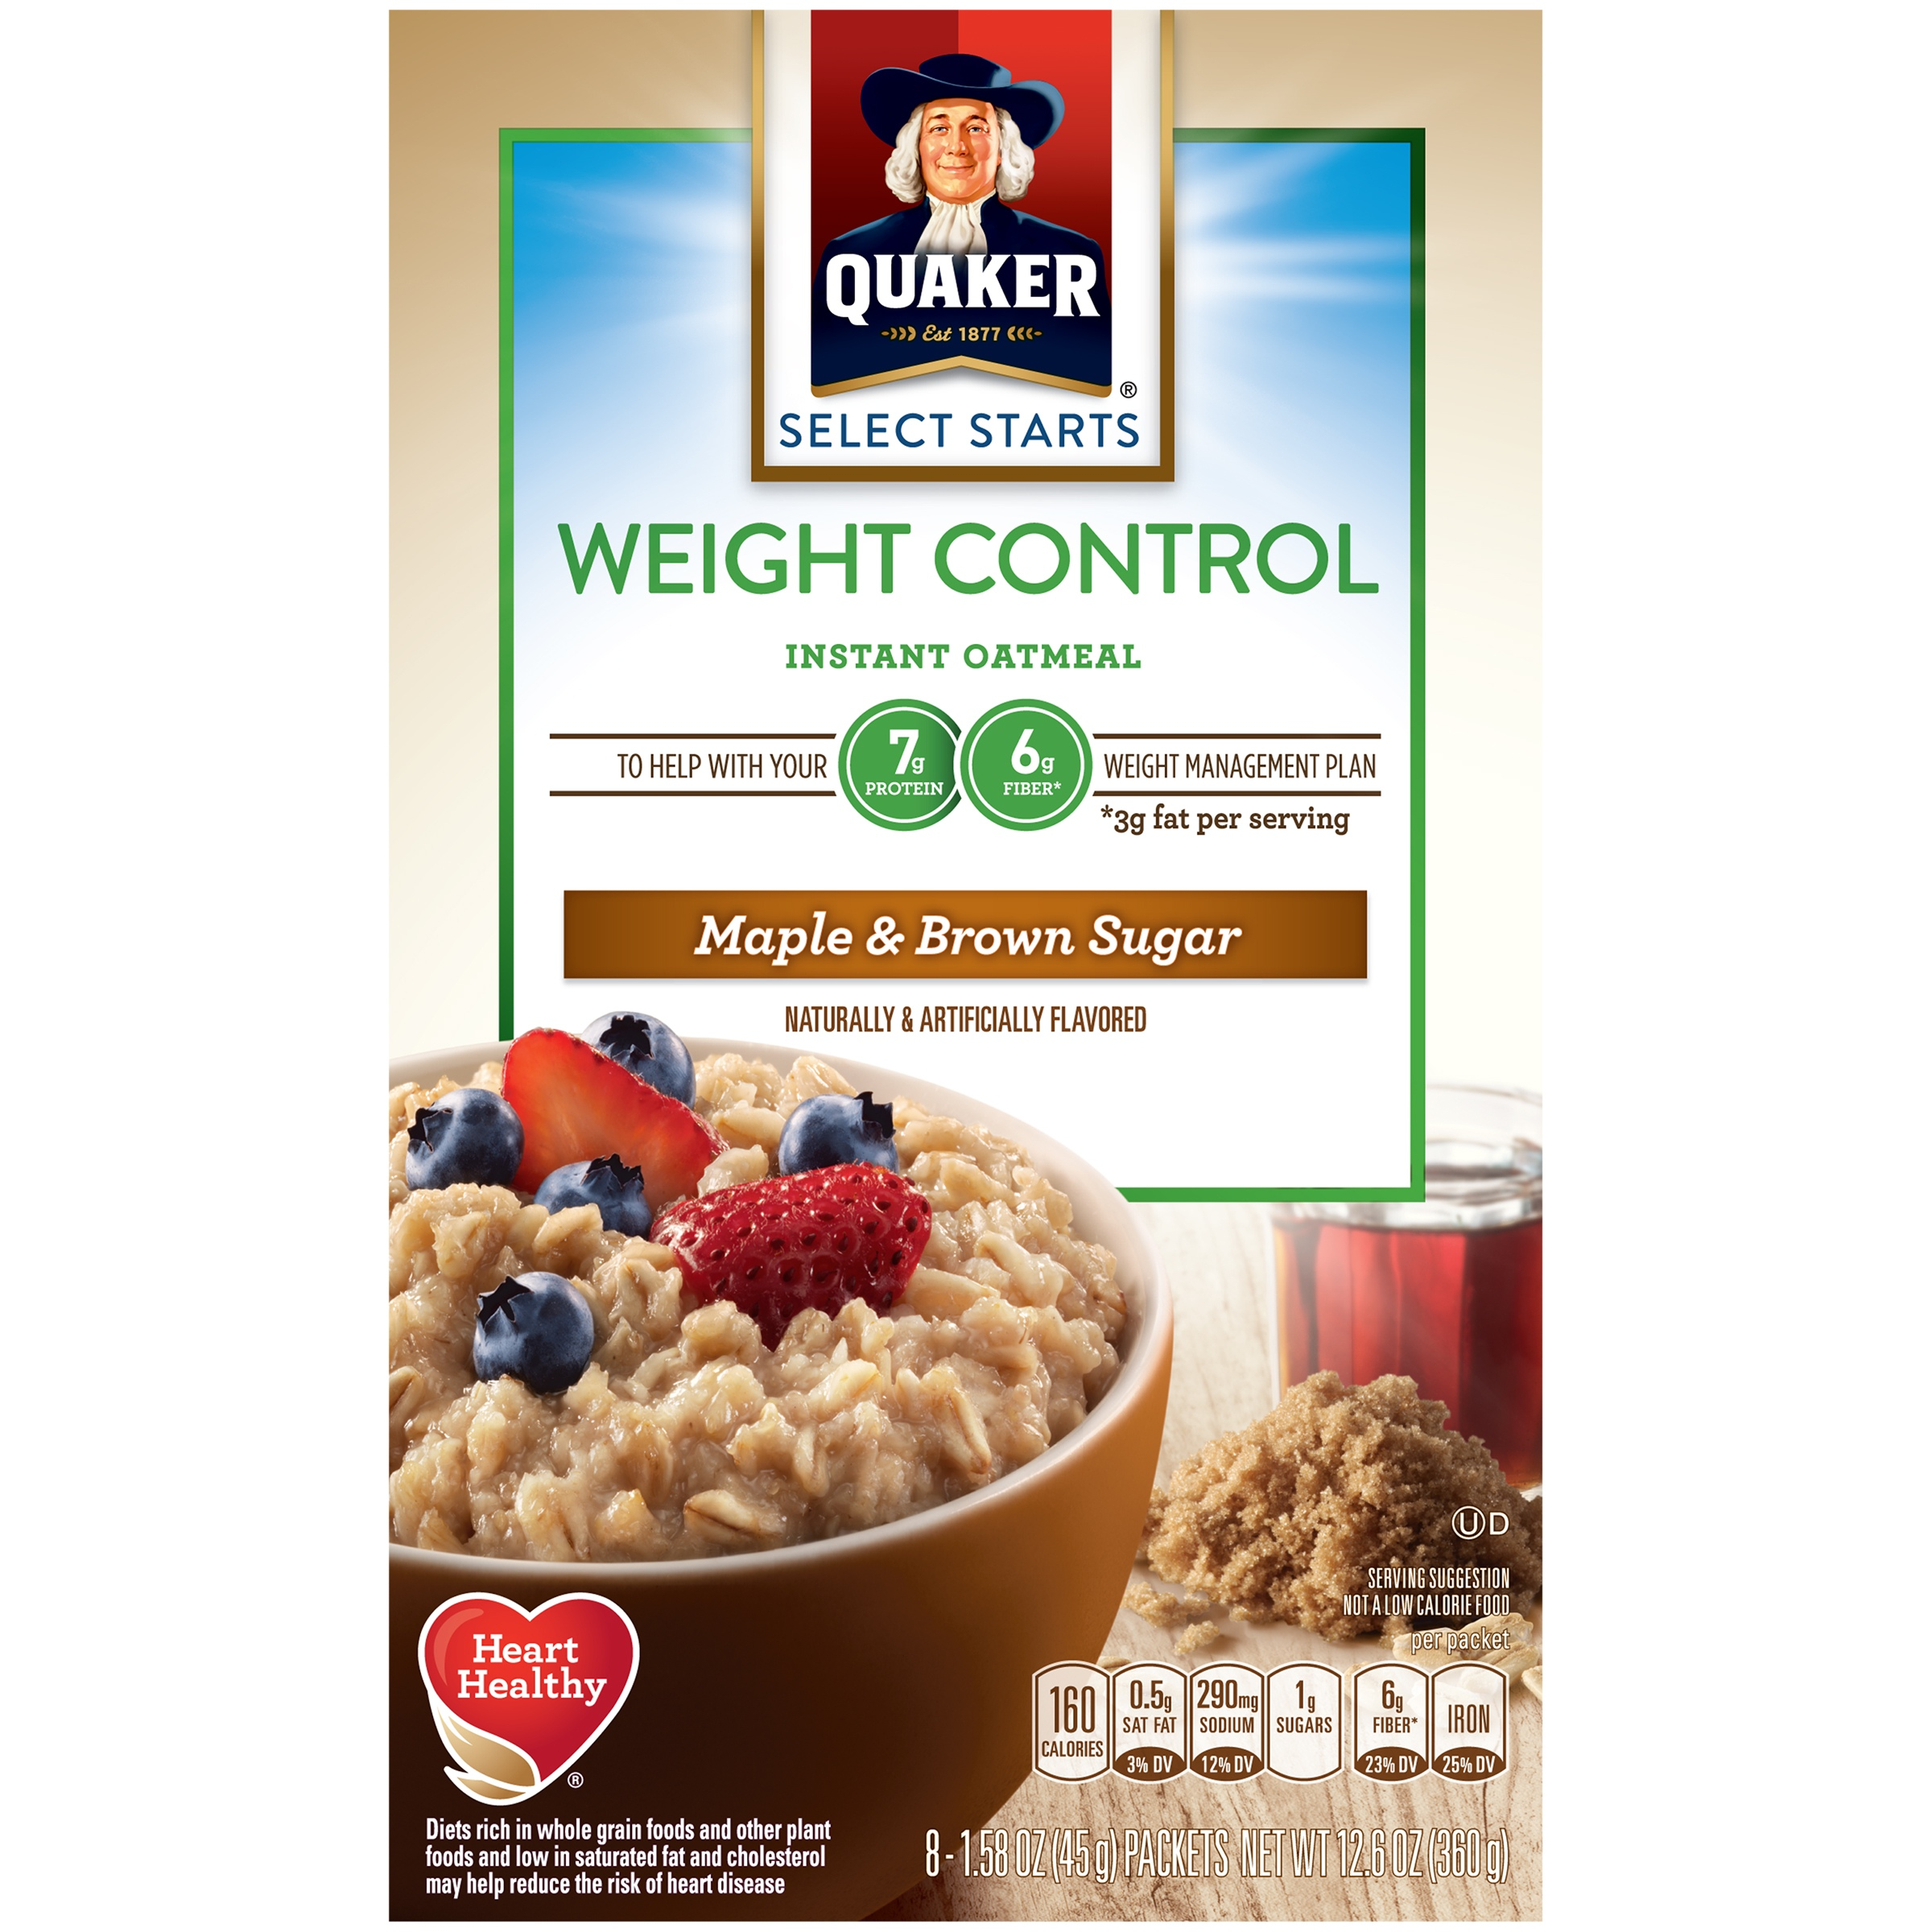 Weight Control Instant Oatmeal